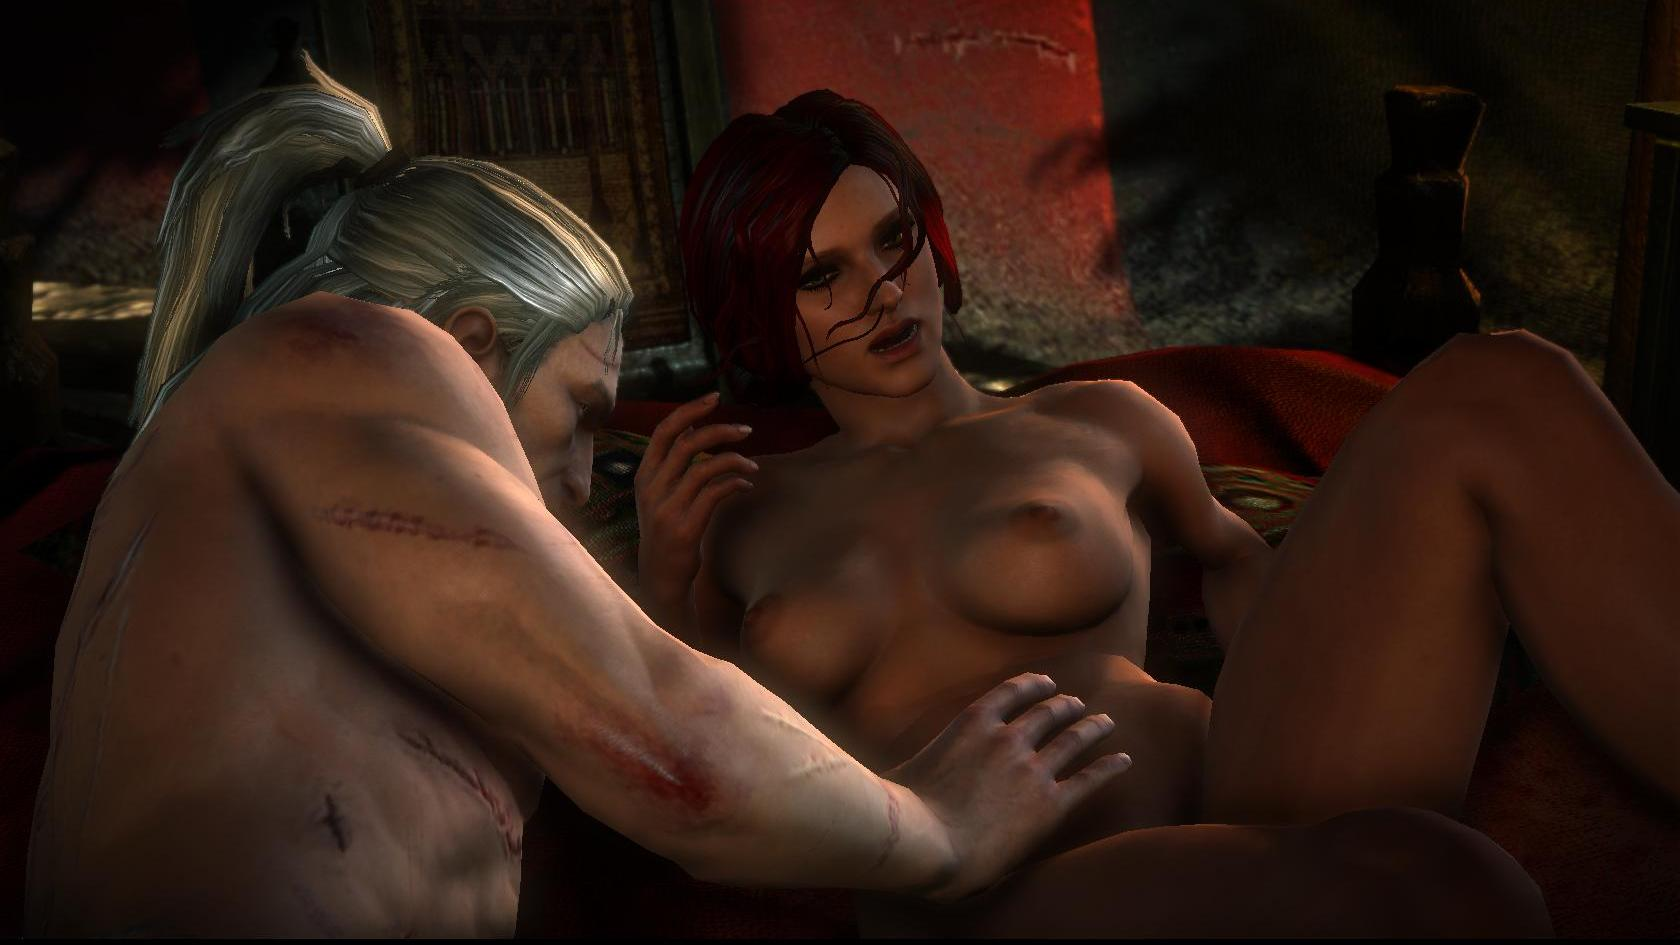 Witcher nude sexual videos